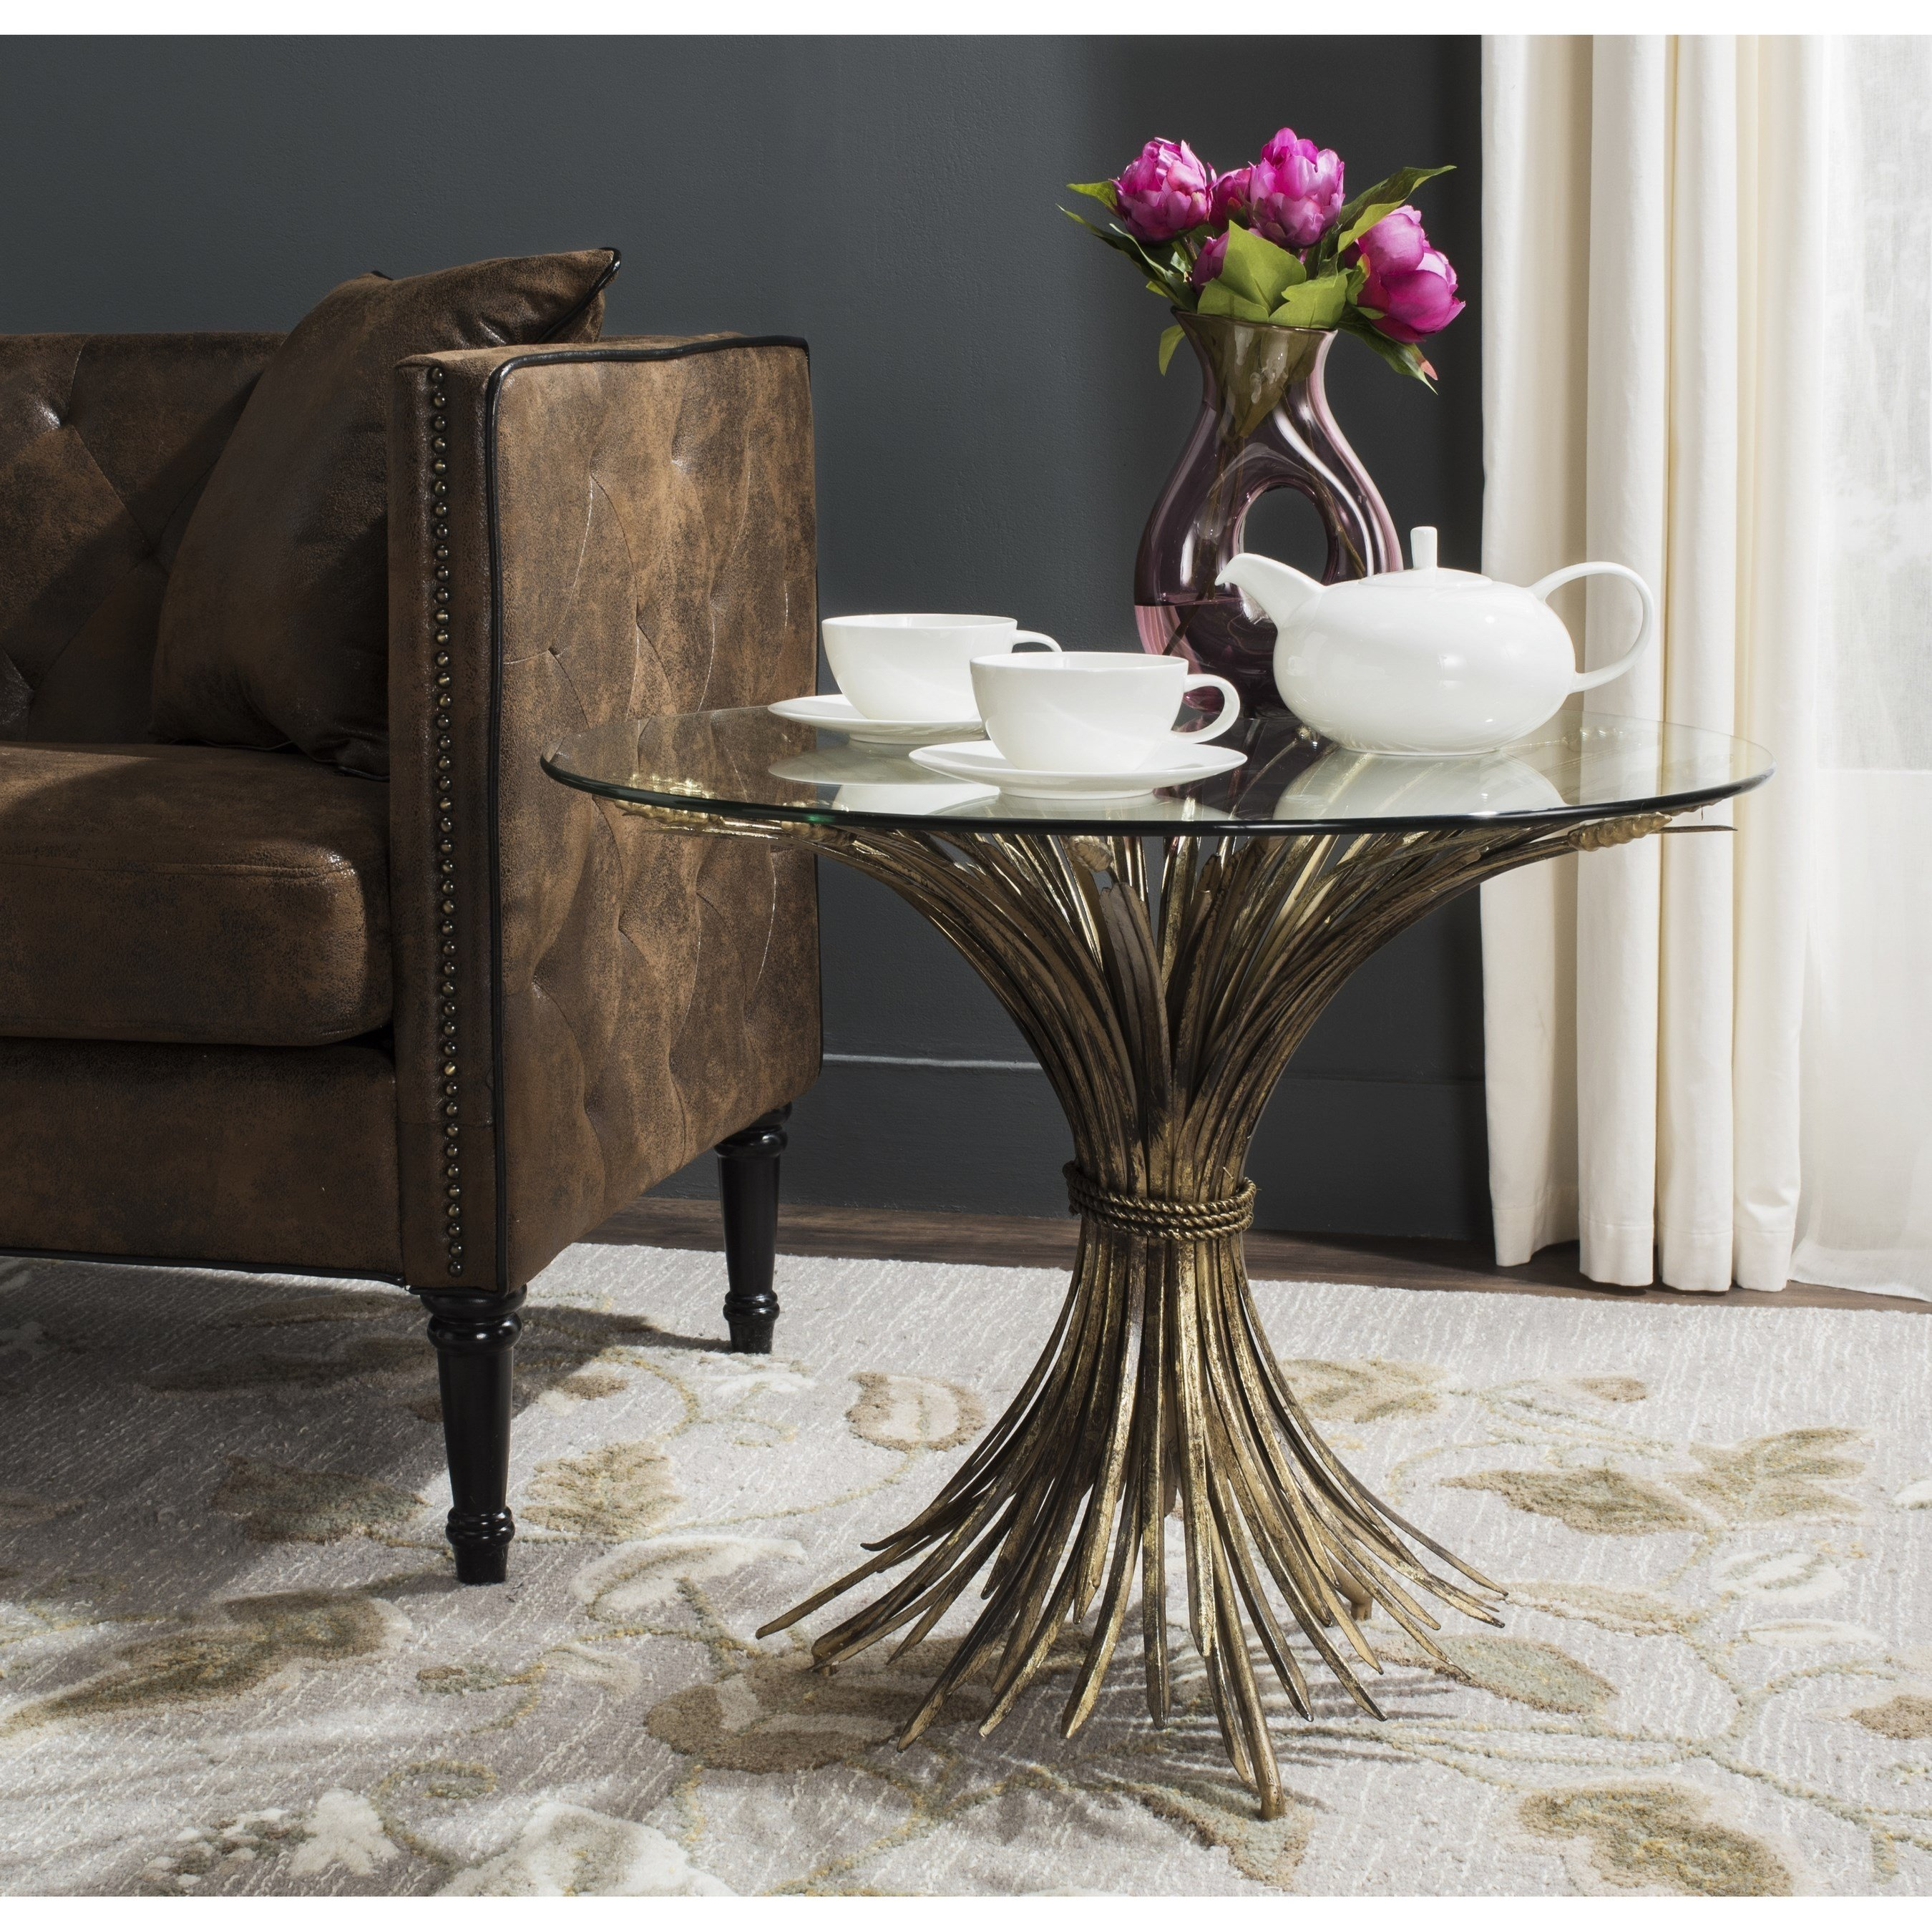 safavieh ayris antique gold leaf accent table free shipping today round black glass side pottery barn rain drum family room decorating ideas off white coffee and end tables diy